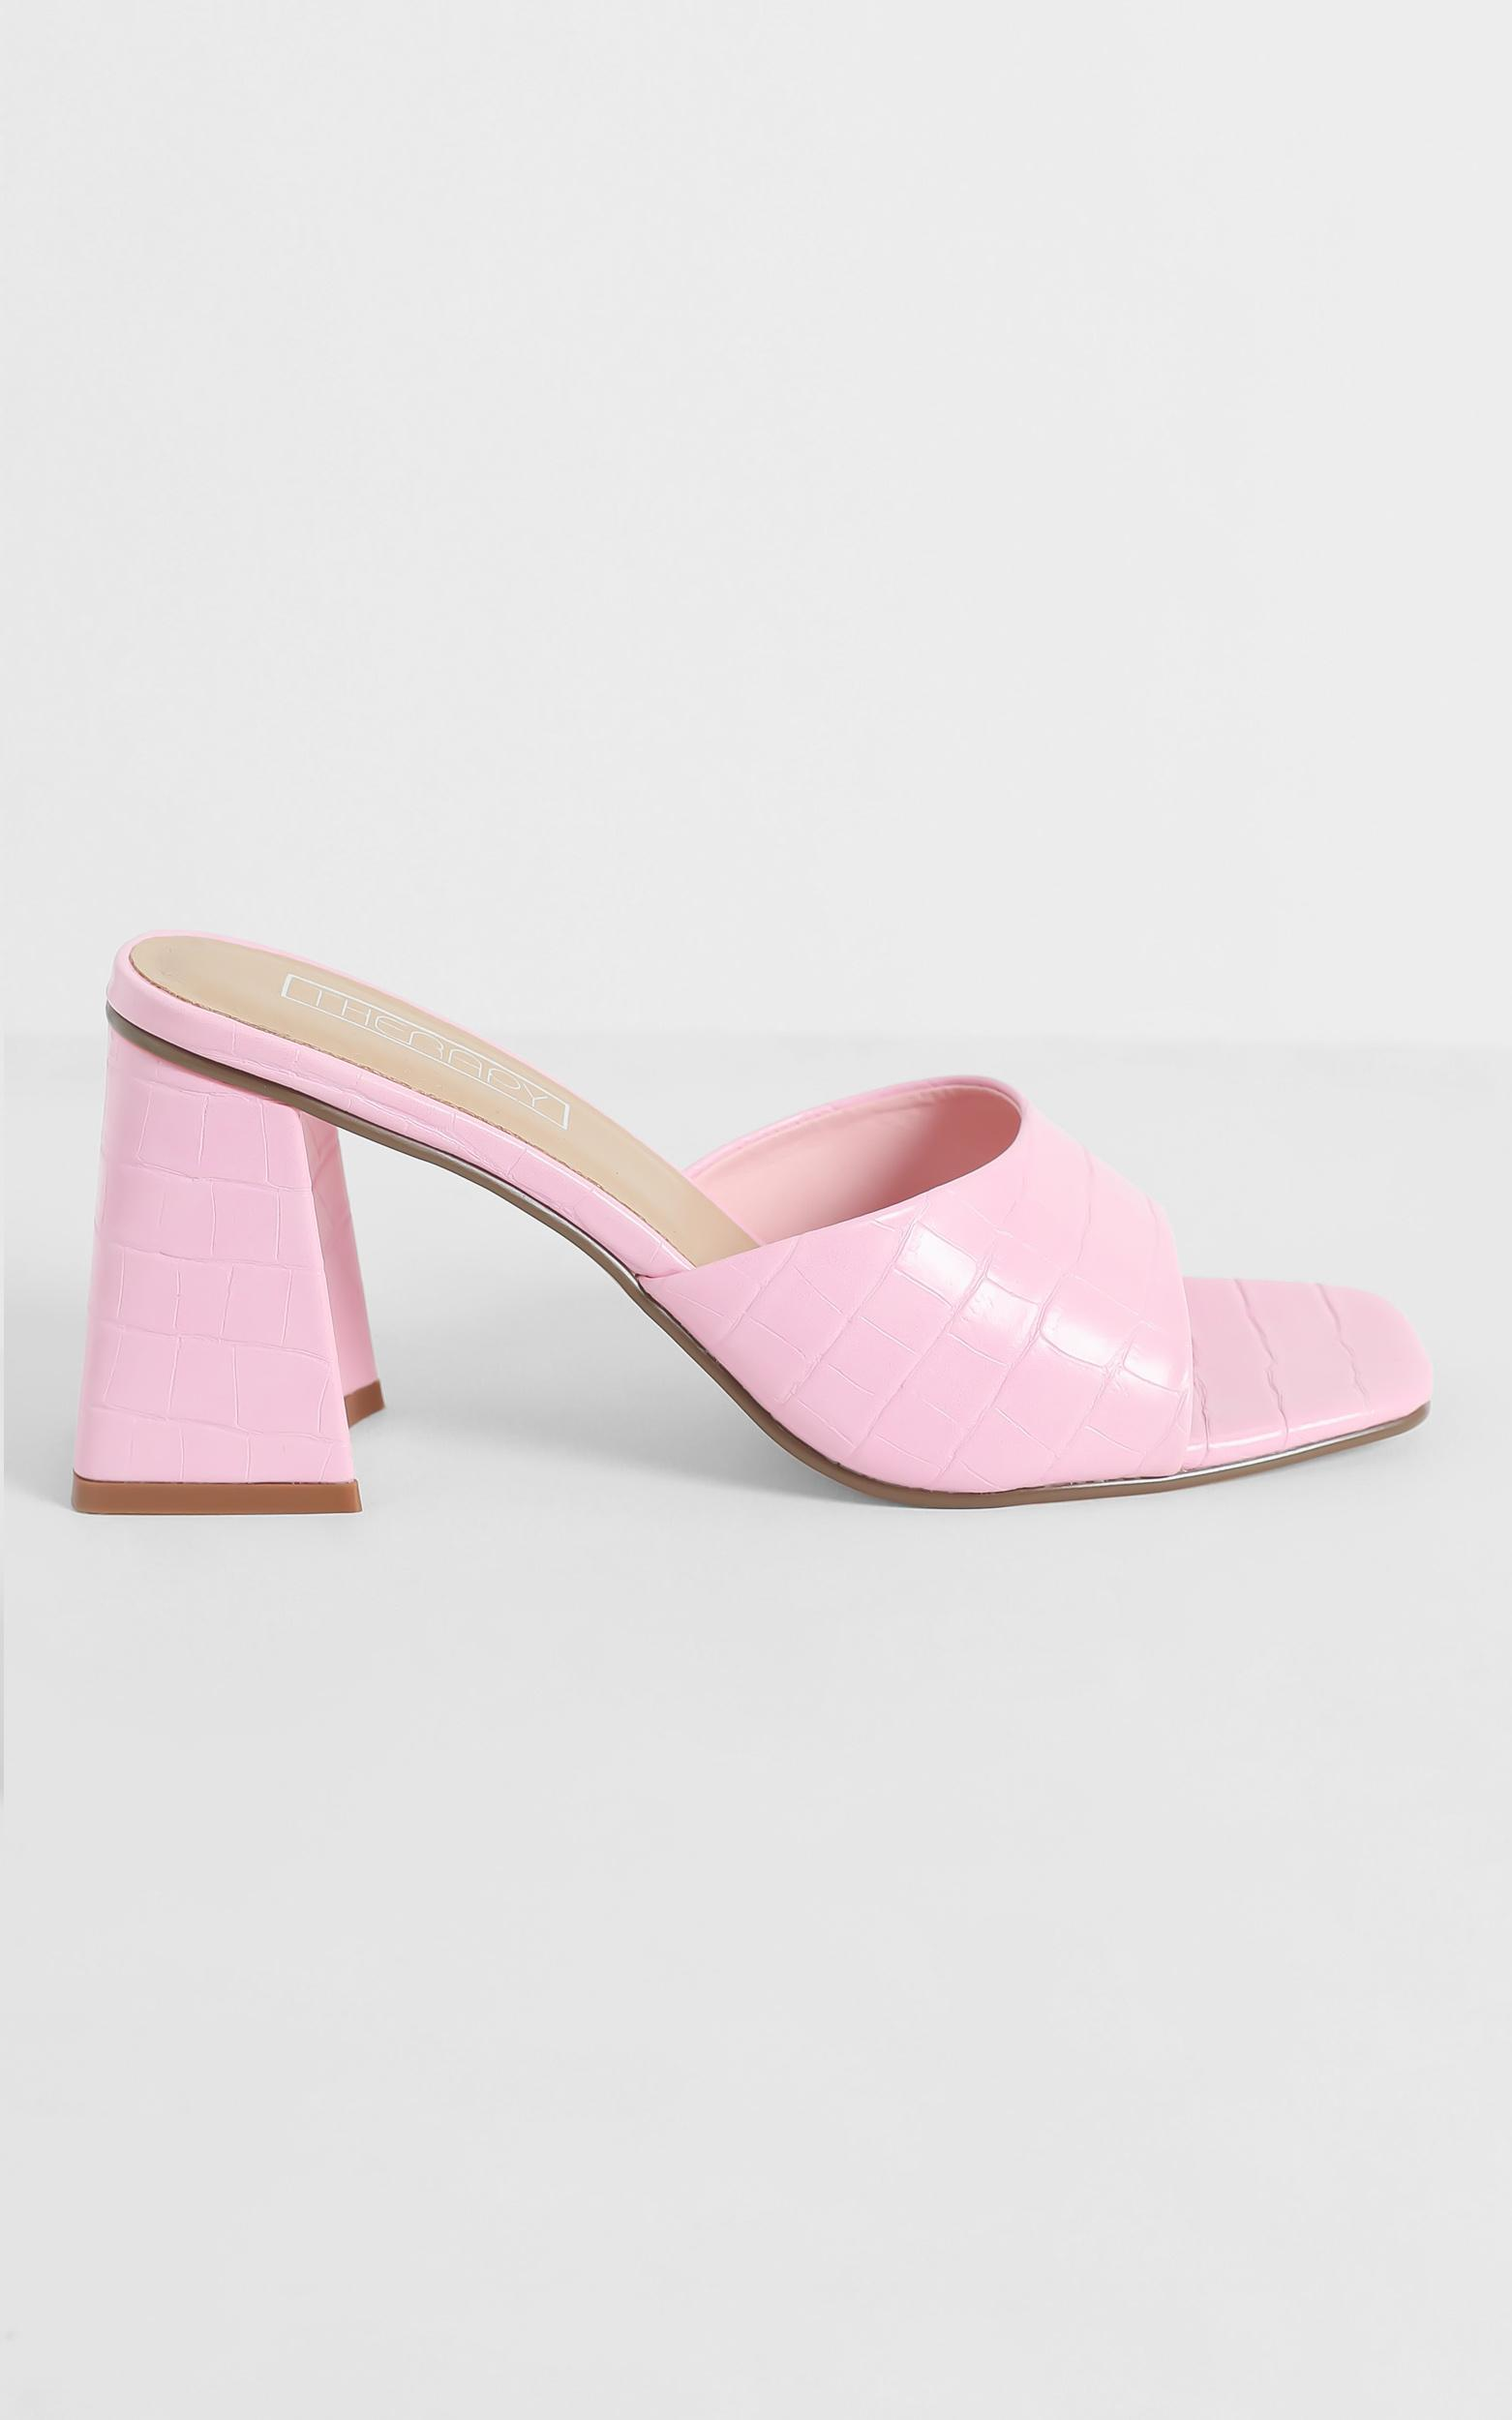 Therapy - Colina Heels in Pink - 5, Pink, hi-res image number null